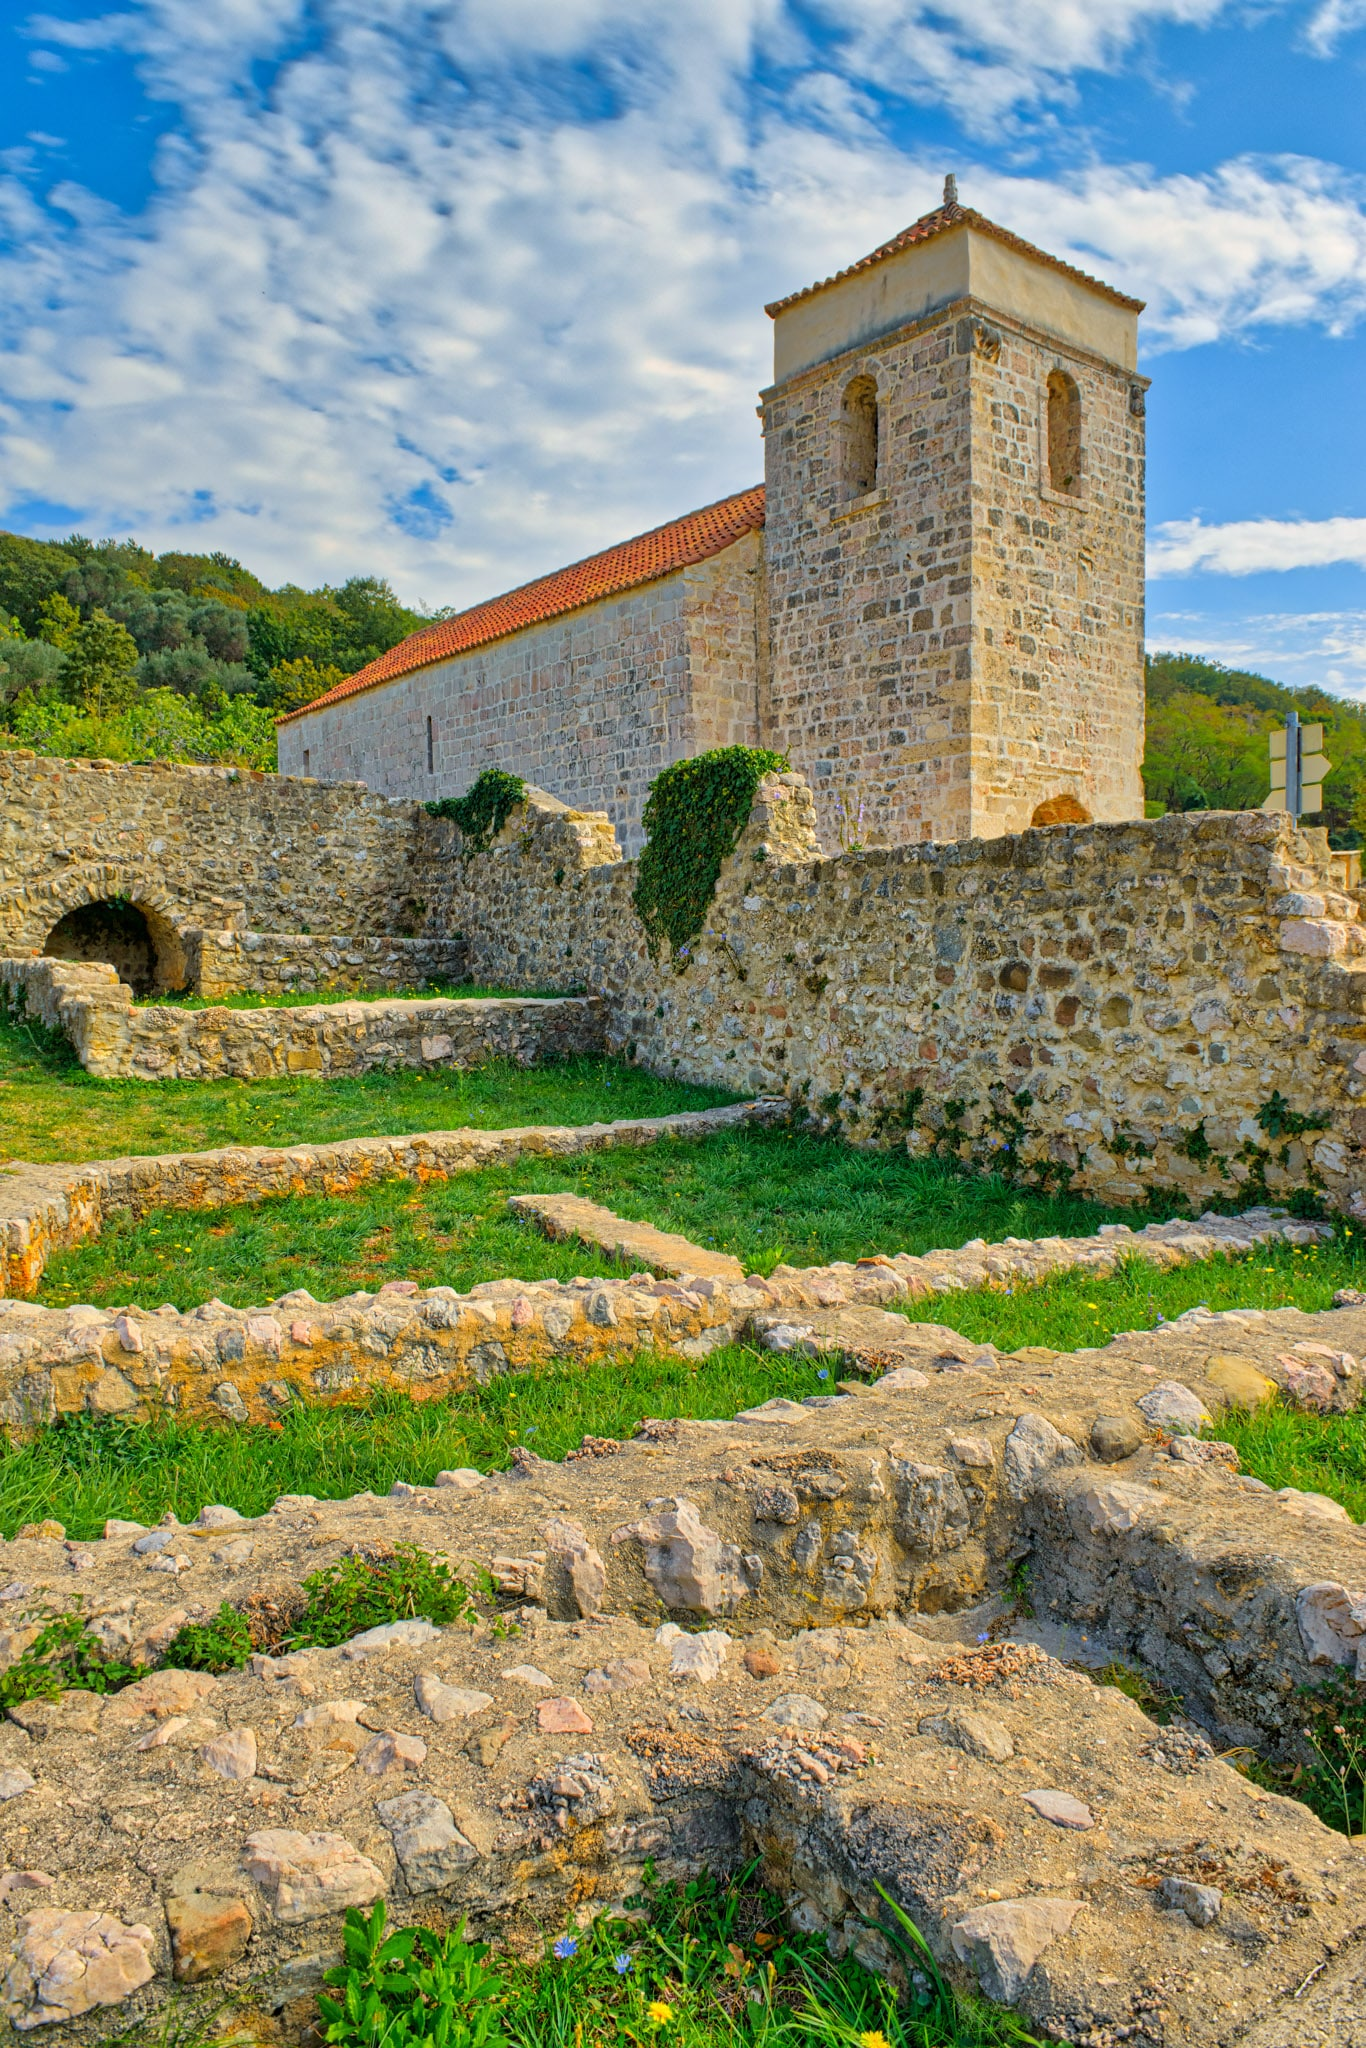 The Church of St. Lucy sits next to the ruins of a monastery near Baska on the island of Krk, Croatia.